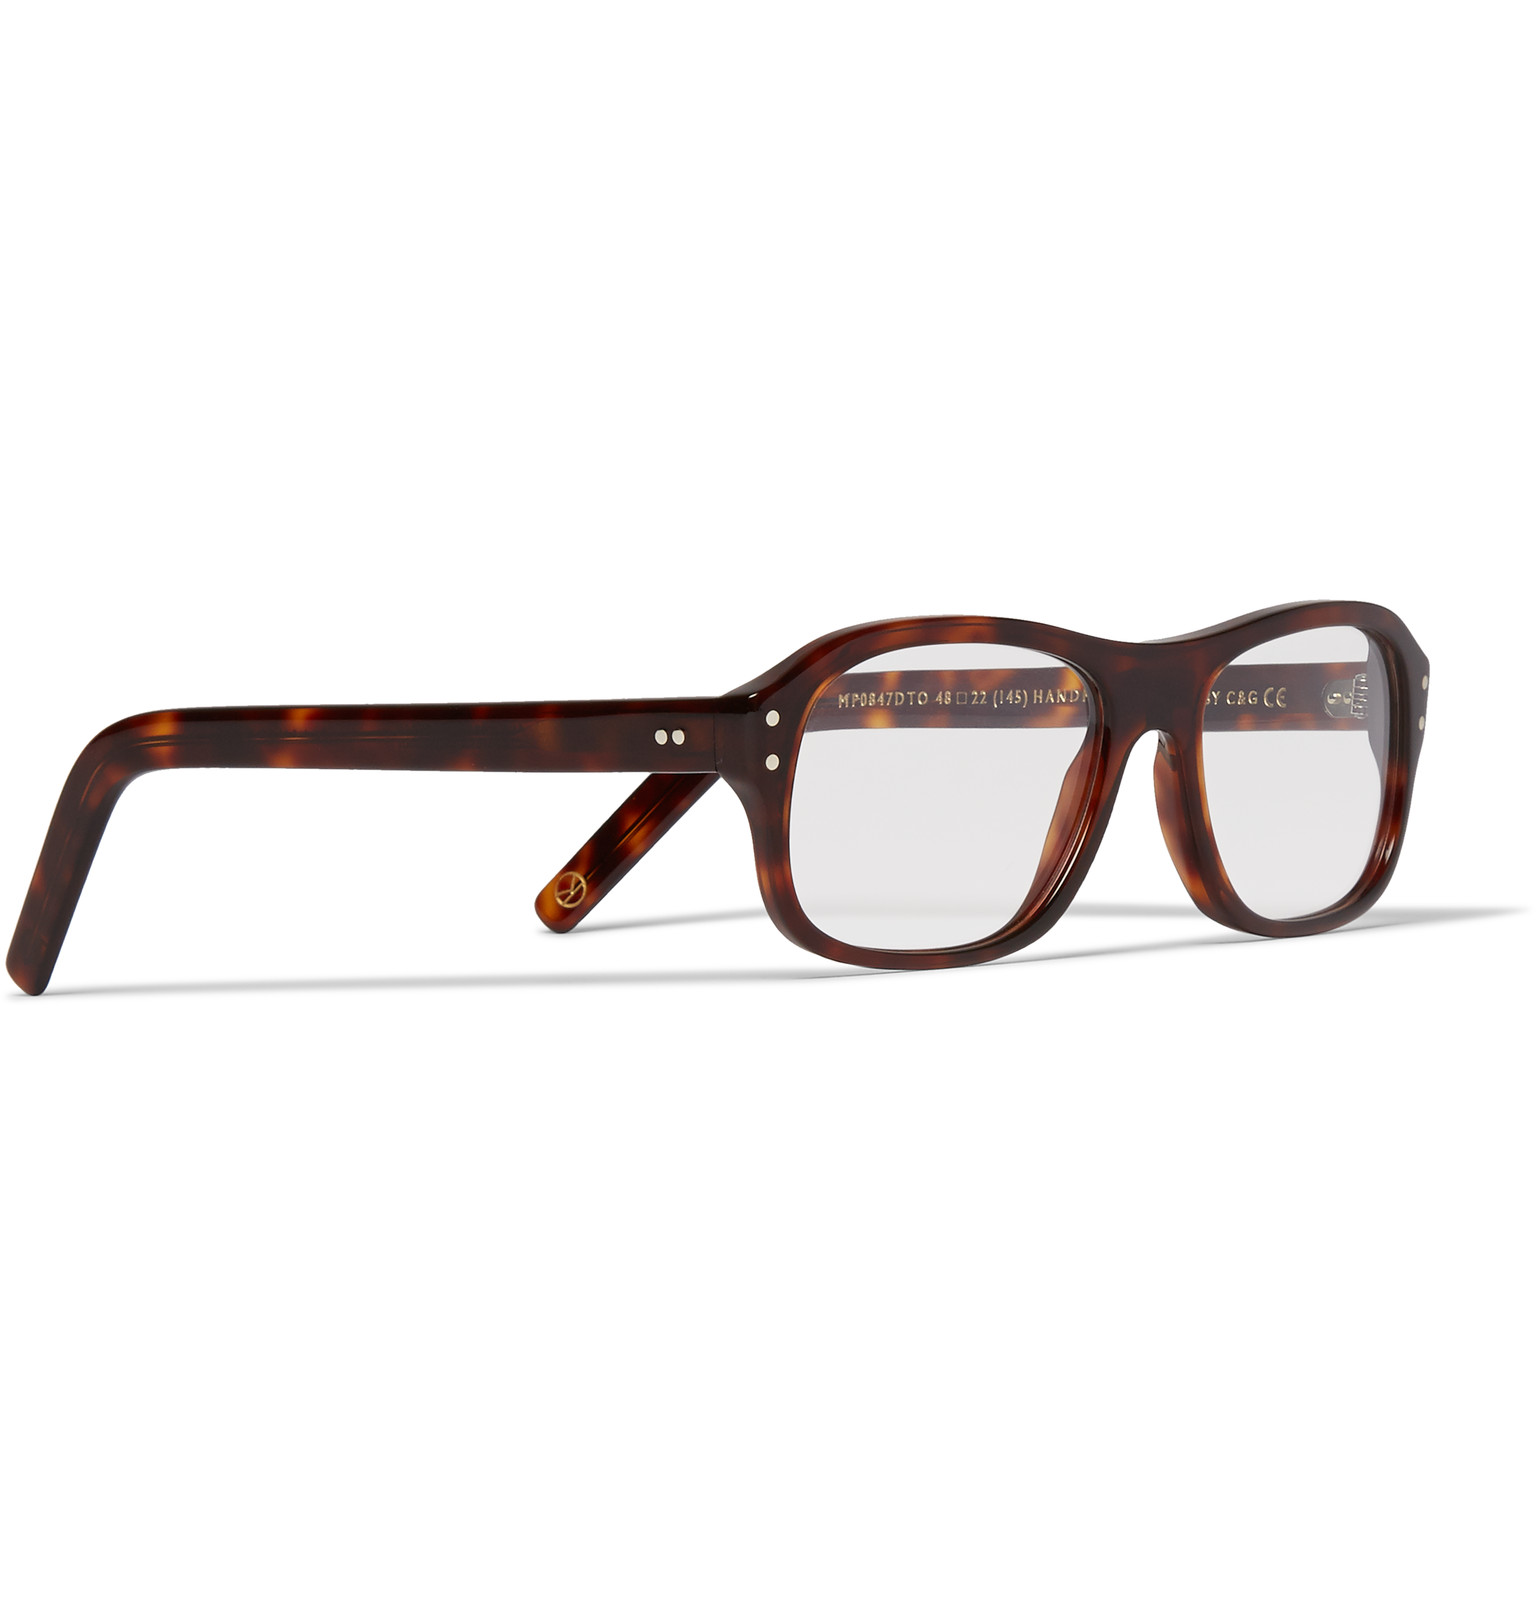 3c819df4004 Kingsman+ Cutler and Gross Square-Frame Tortoiseshell Acetate Optical  Glasses